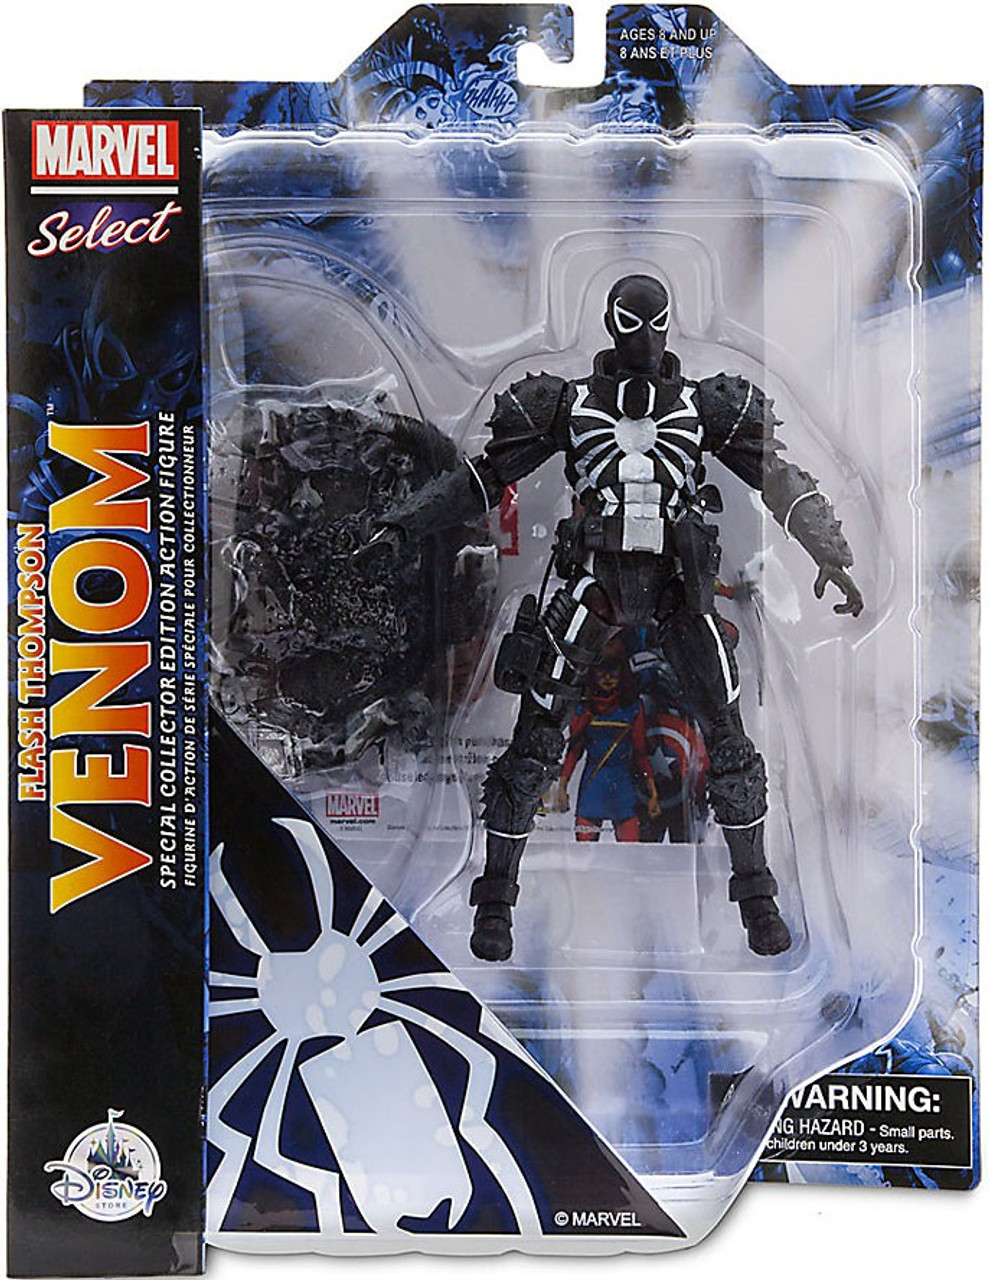 Marvel Select Flash Thompson Venom Exclusive Action Figure